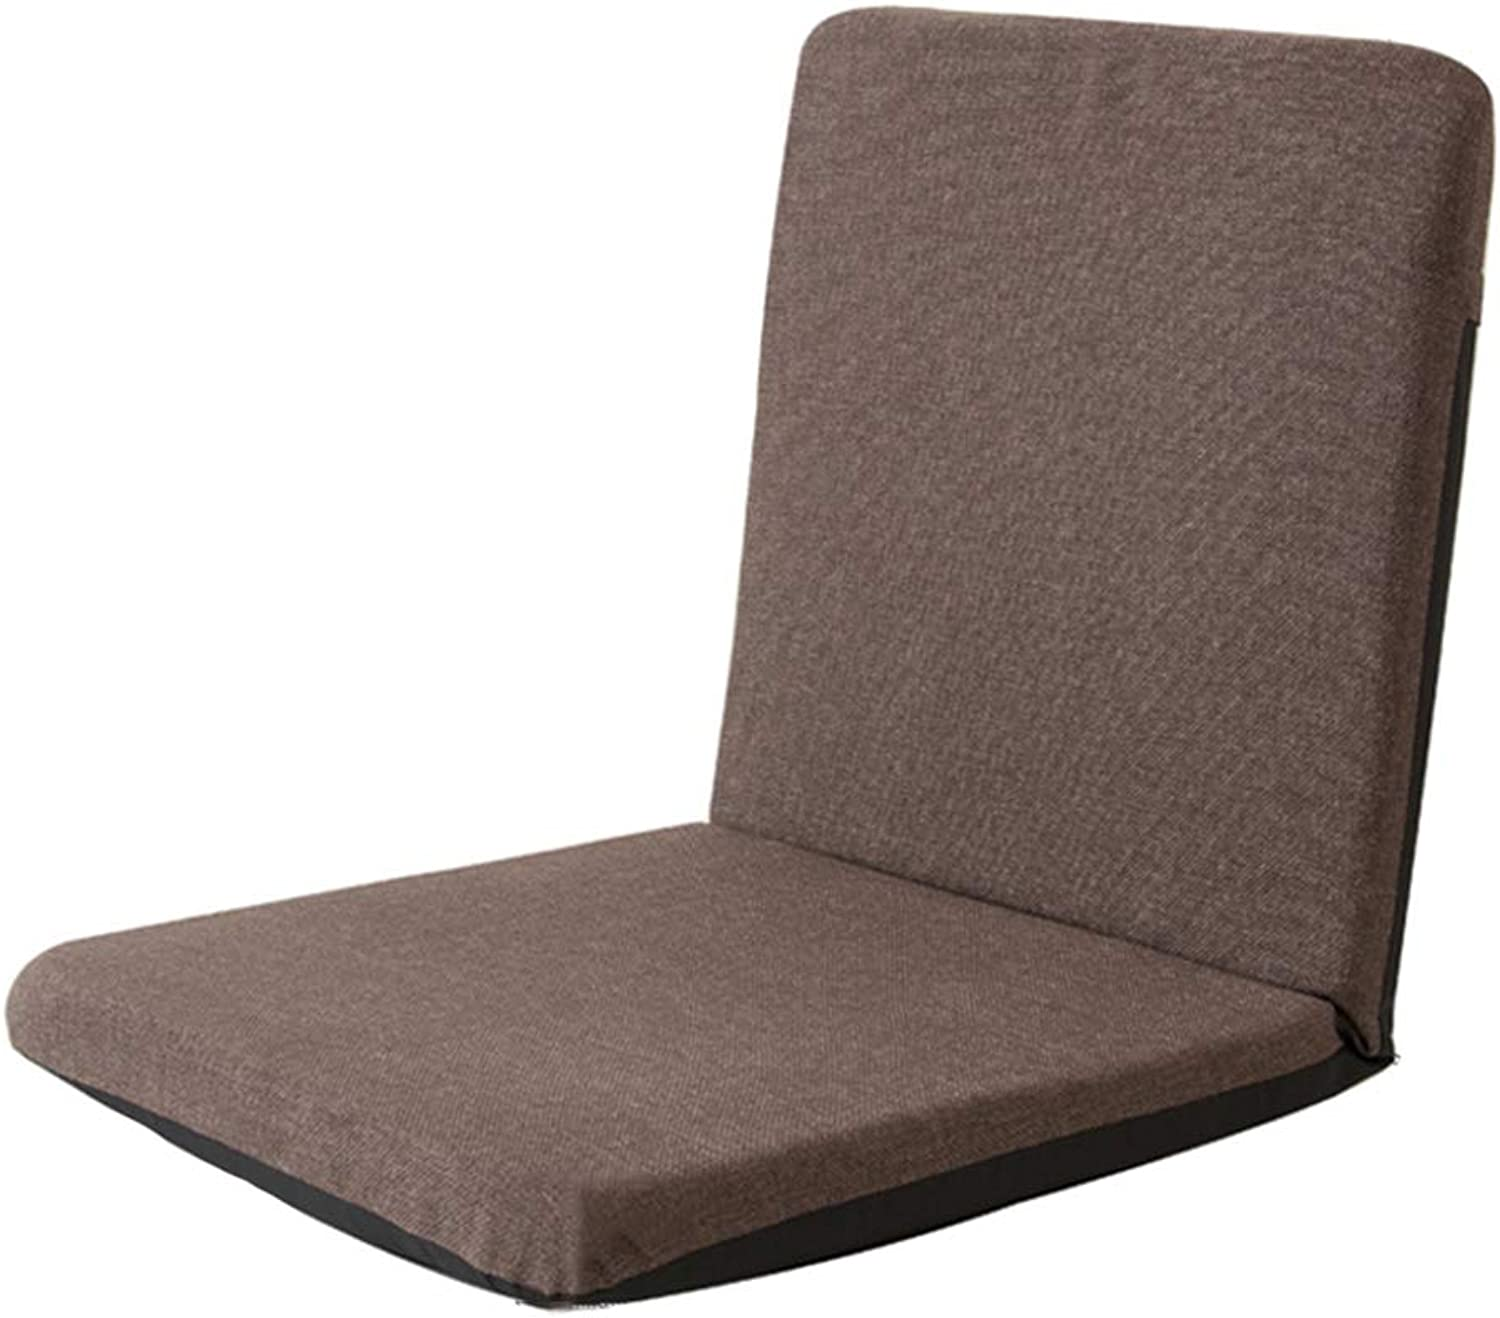 LJFYXZ Floor Folding Gaming Sofa Chair Single Small Sofa 5-Speed Adjustment Cotton and Linen Fabric Comfortable and Breathable Easy to Remove and wash Bedroom Living Room Cushion (color   Brown)